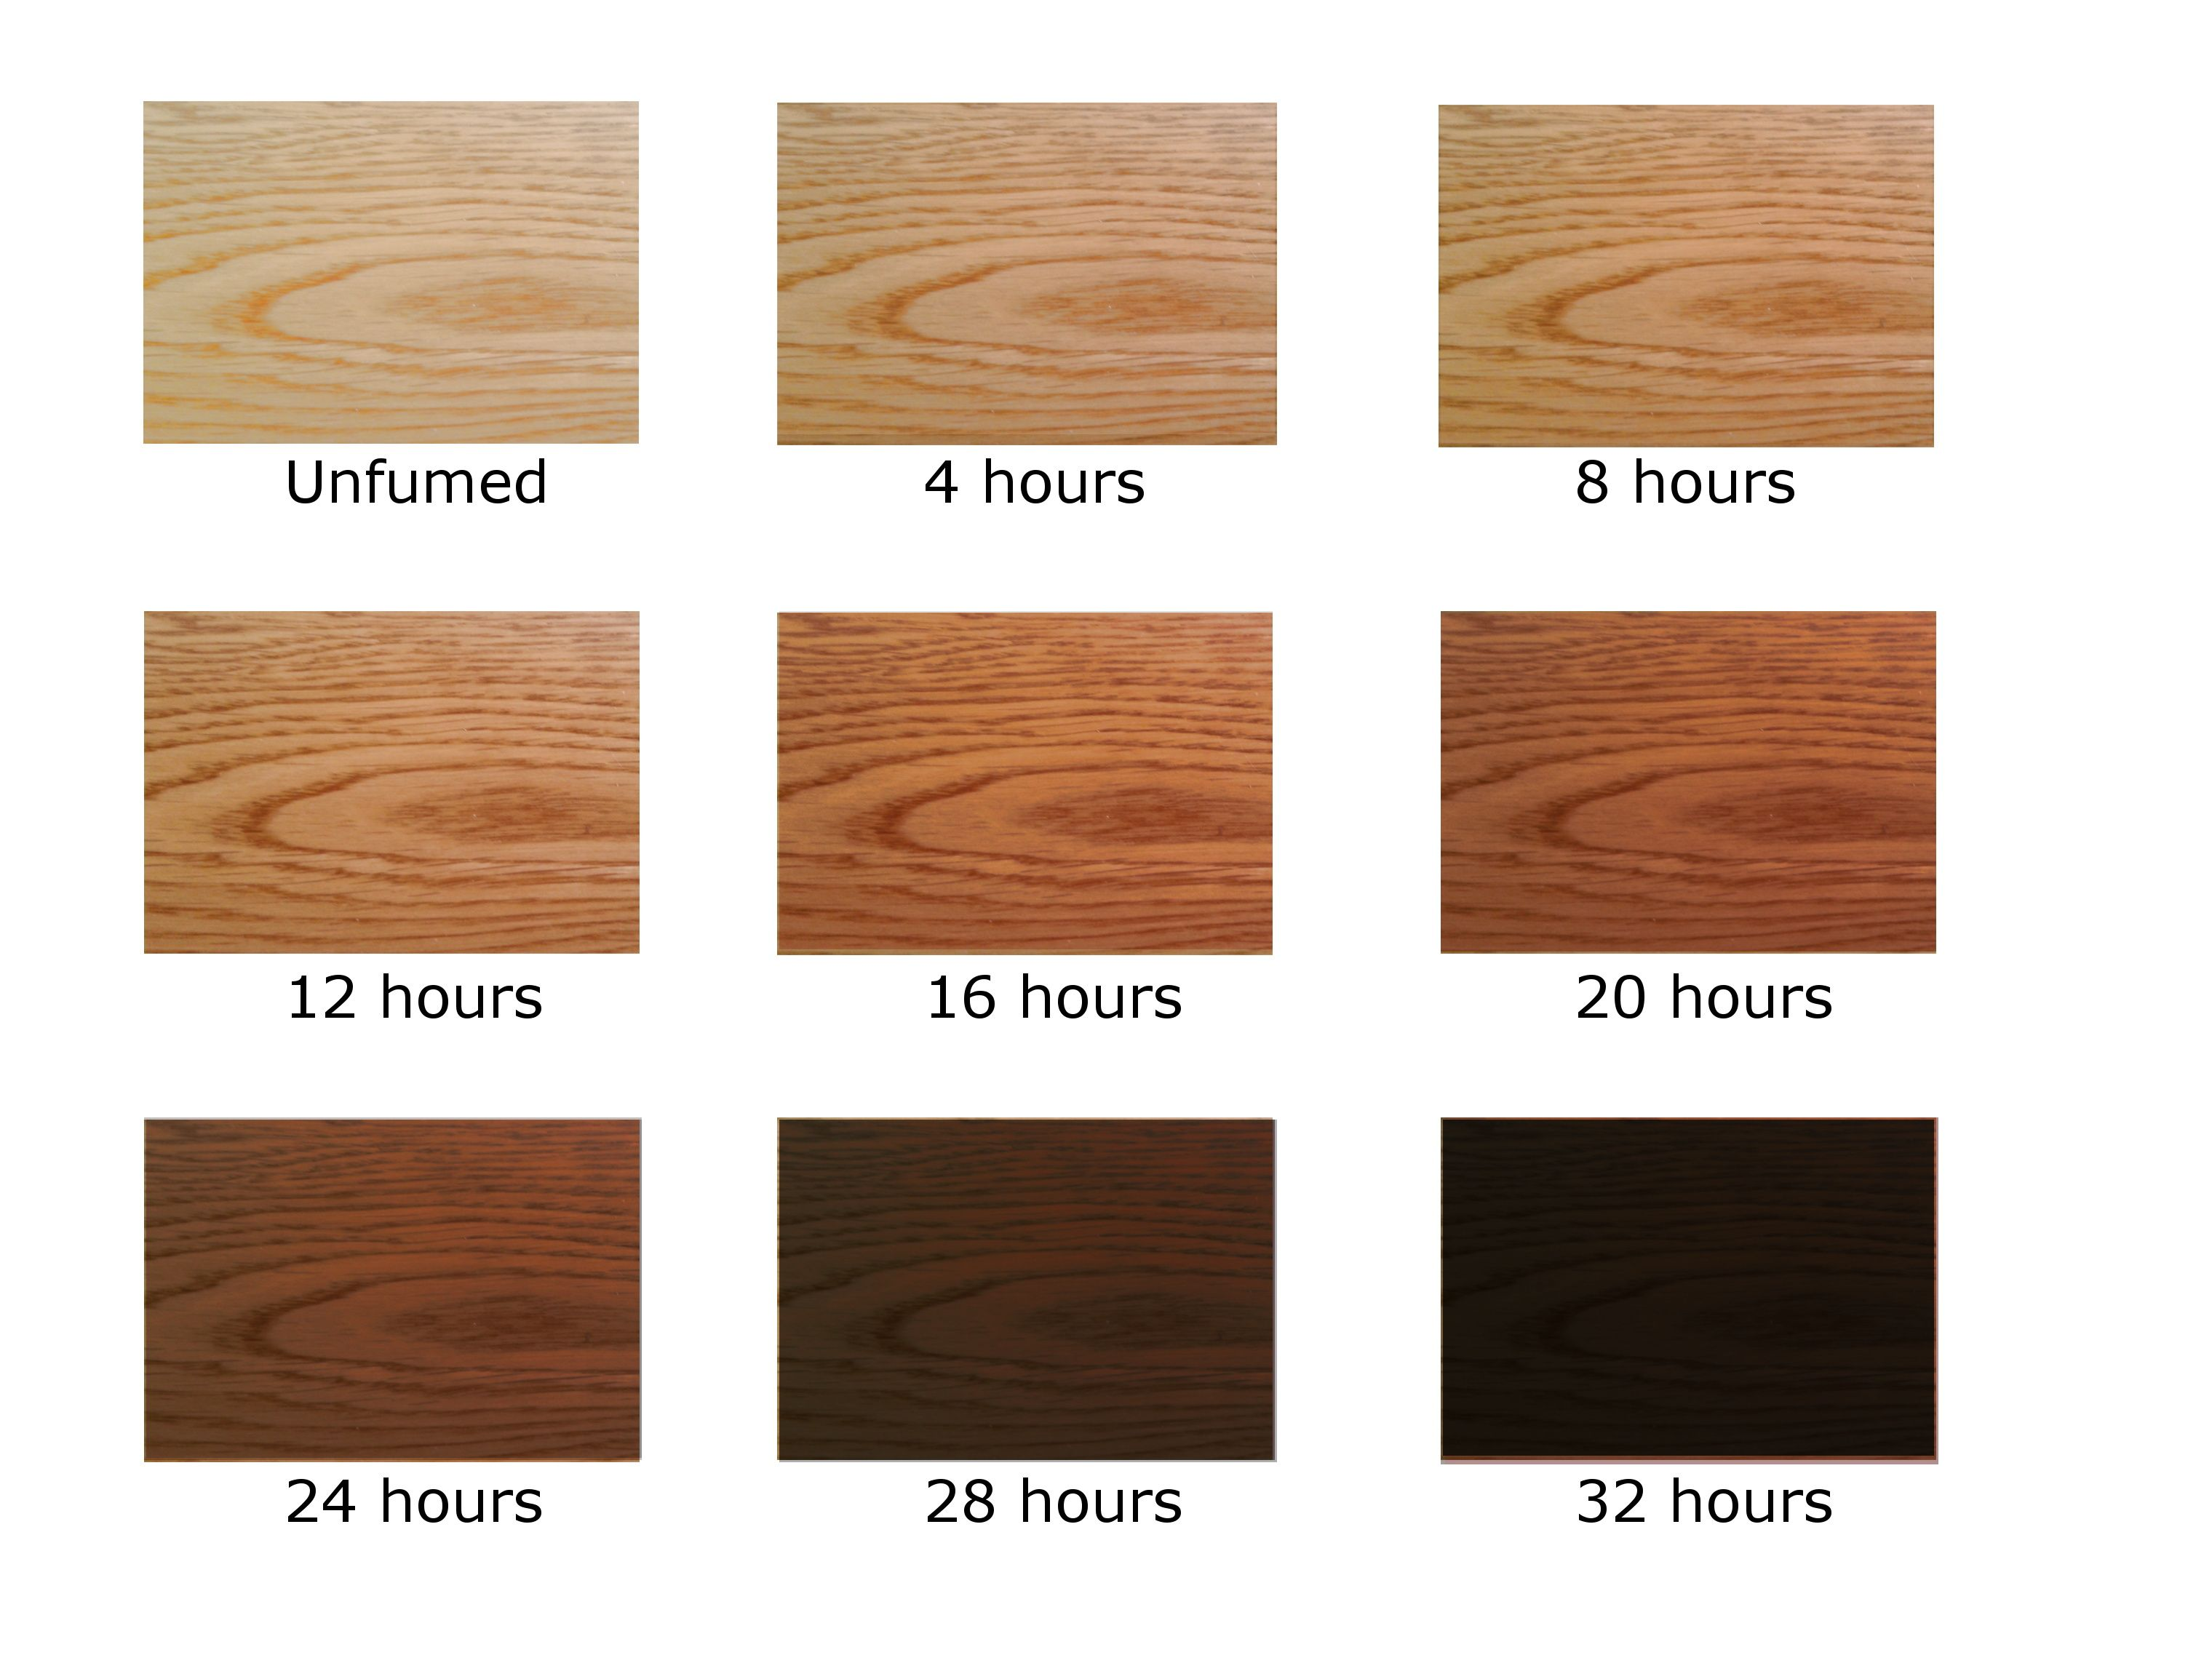 Ammonia Fumed Oak The Longer It Is Fumed The Darker The